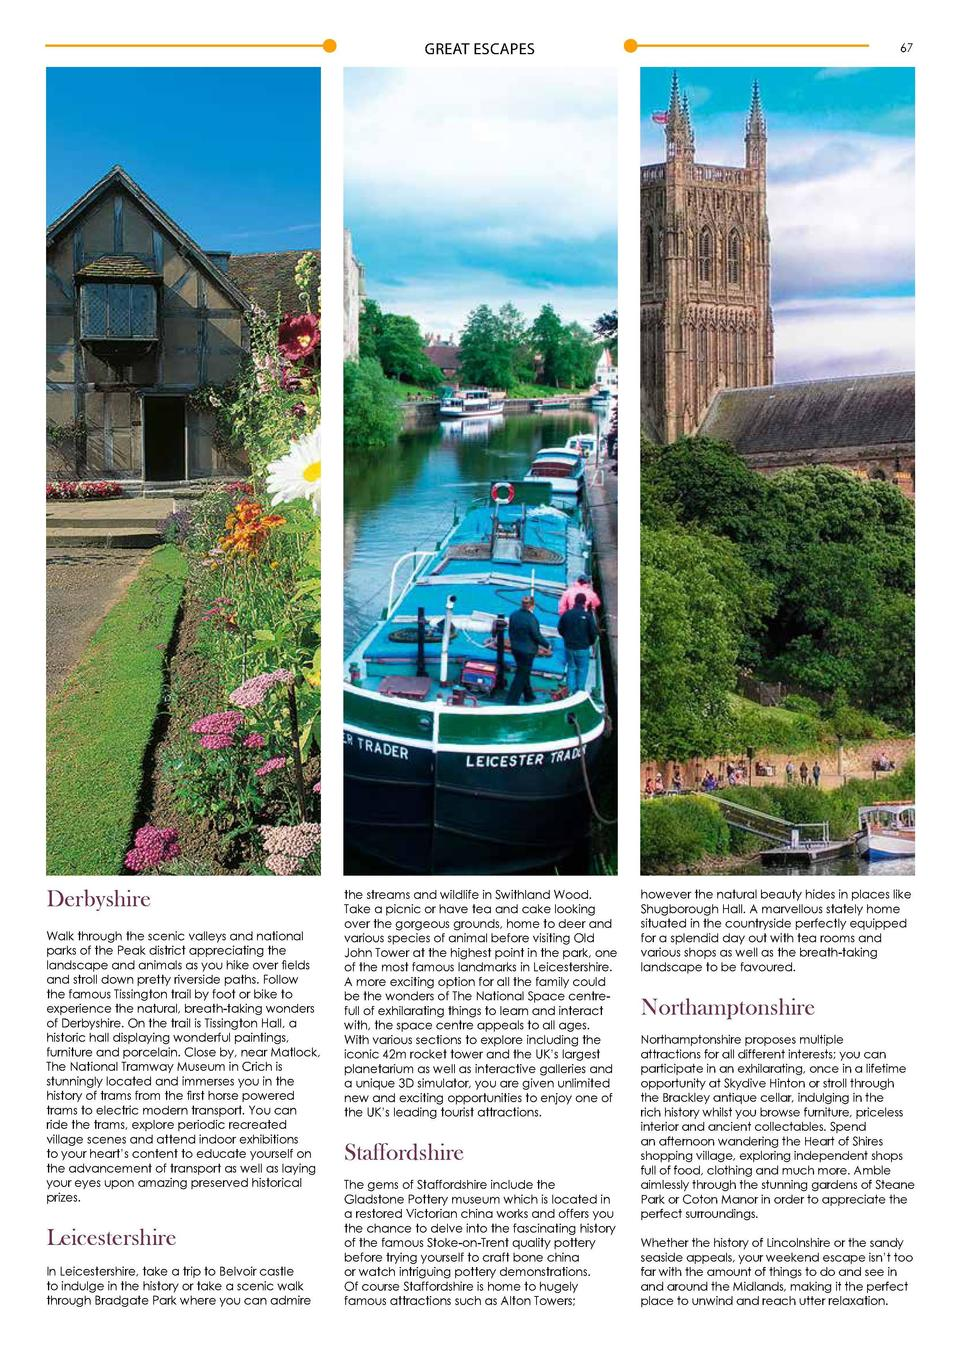 GREAT ESCAPES  Courtesy of Visit Lincoln www.visitlincoln.com  66  GREAT ESCAPES  67  Perfect places for you to unwind  S ...